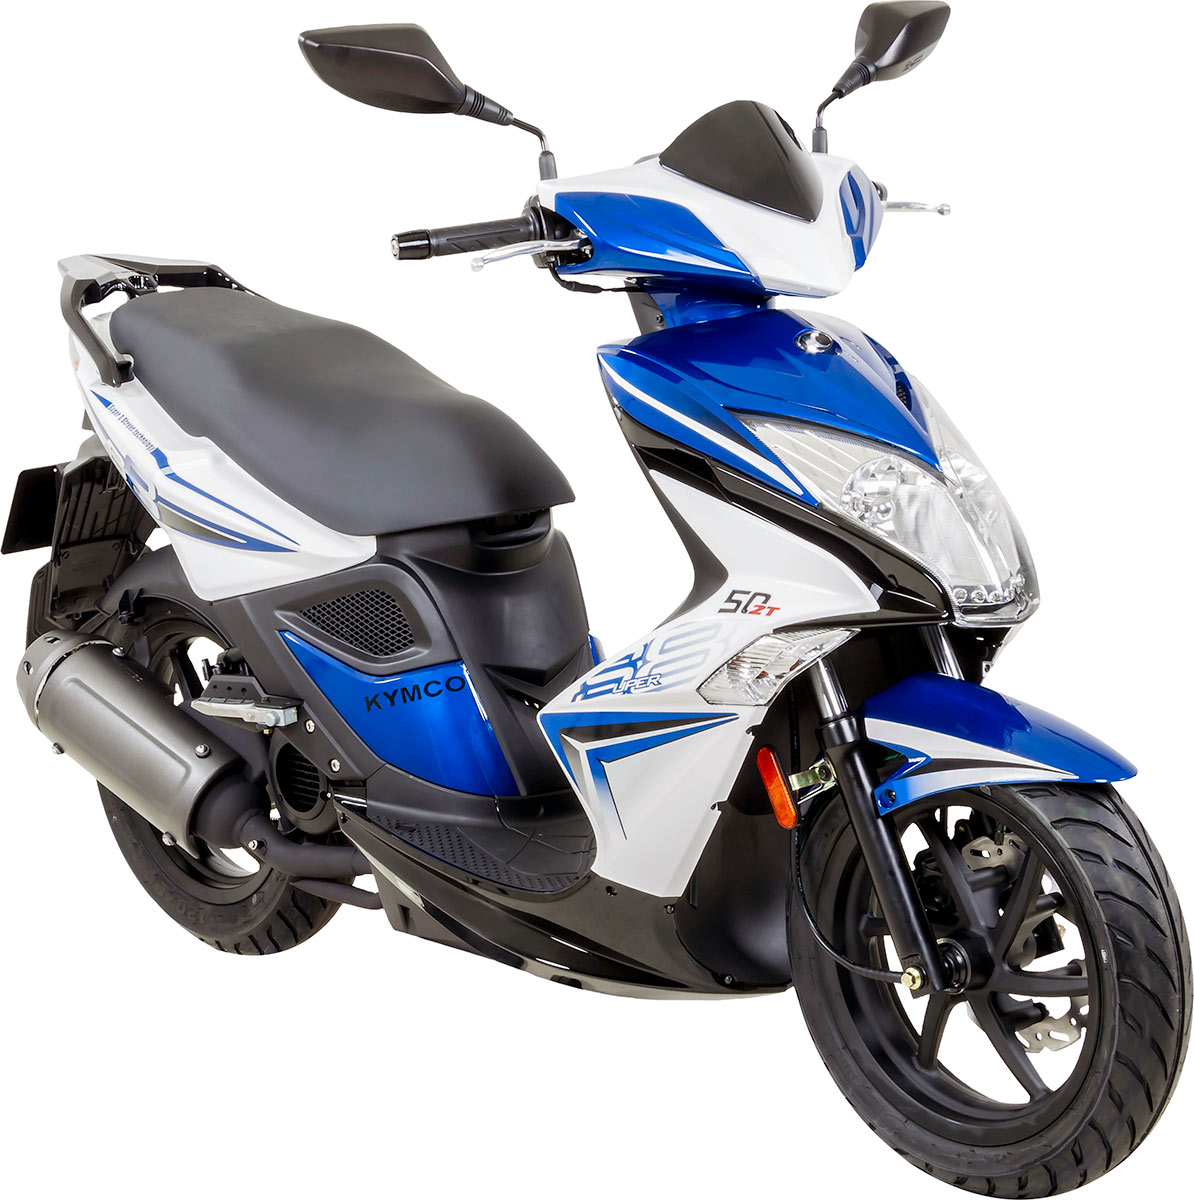 Kymco Super 8 50 2T 2011 images #101270